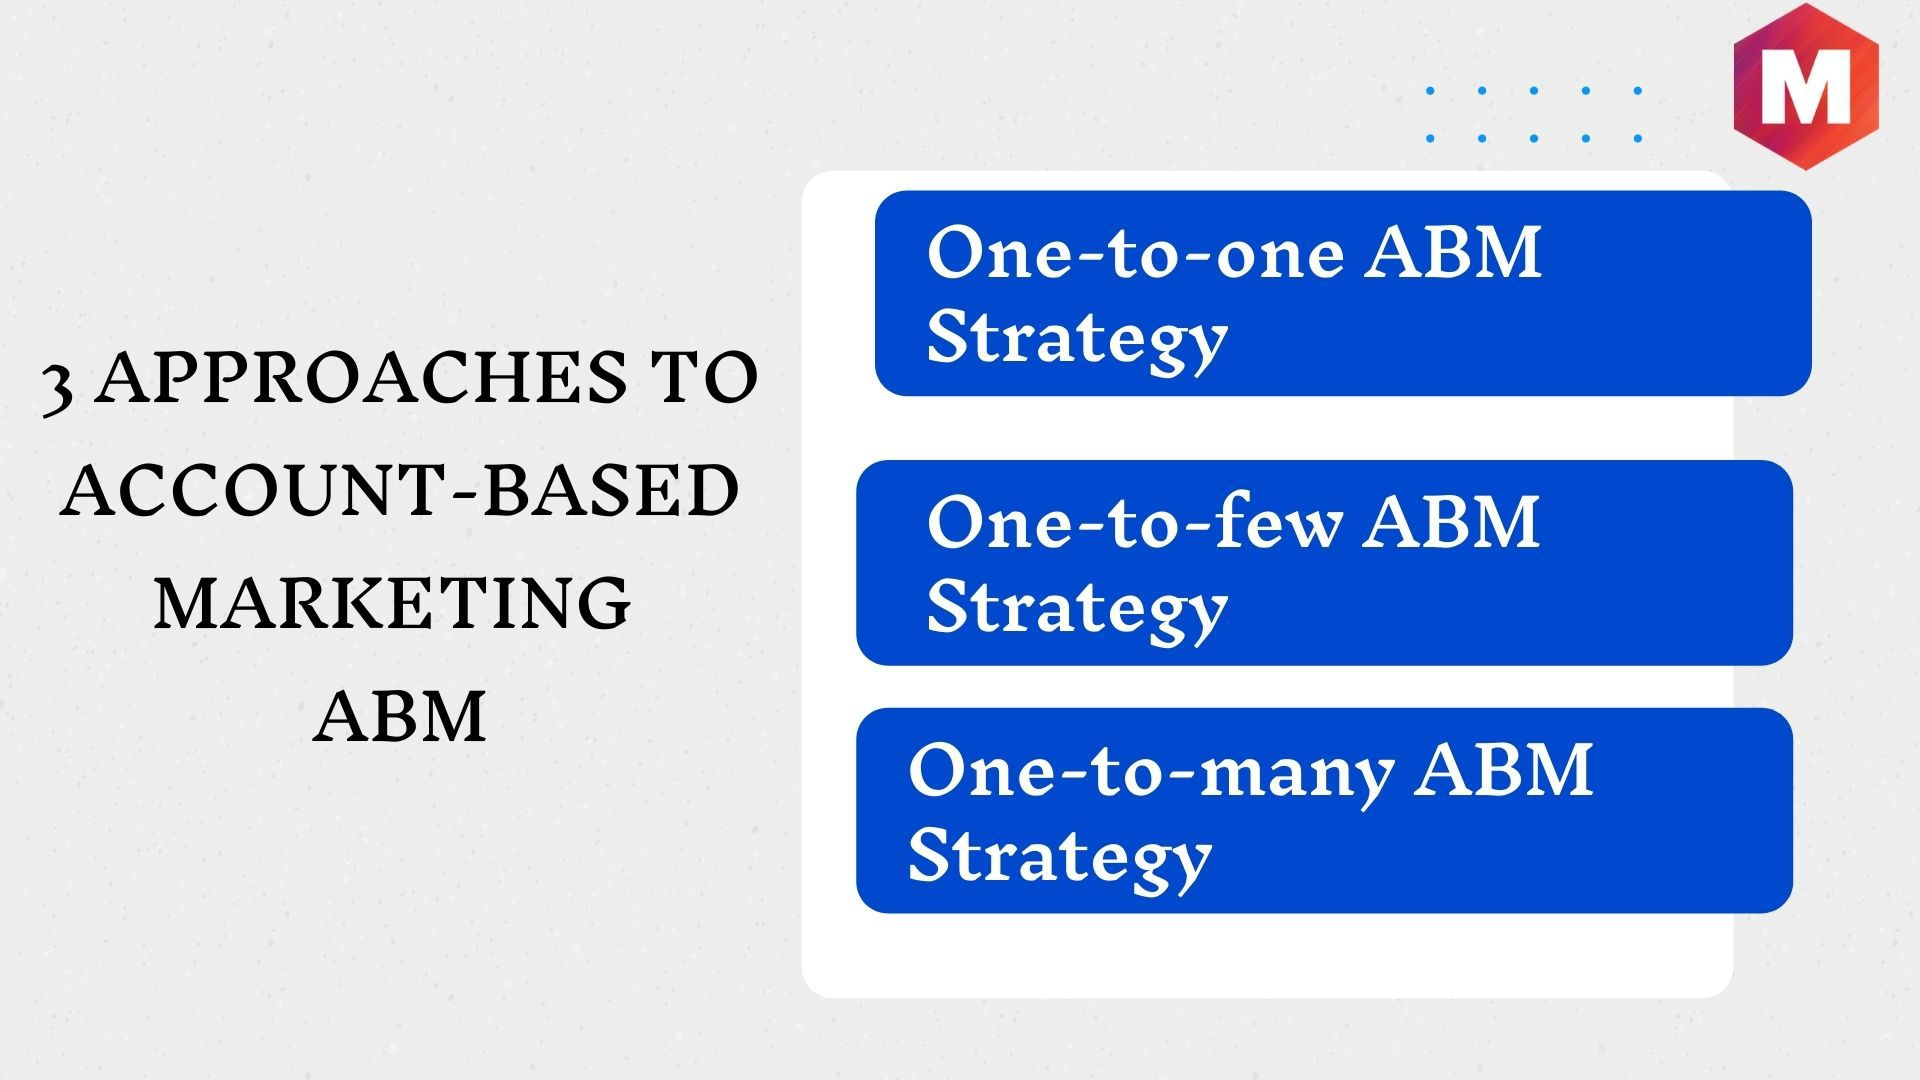 3 approaches to Account-based Marketing ABM